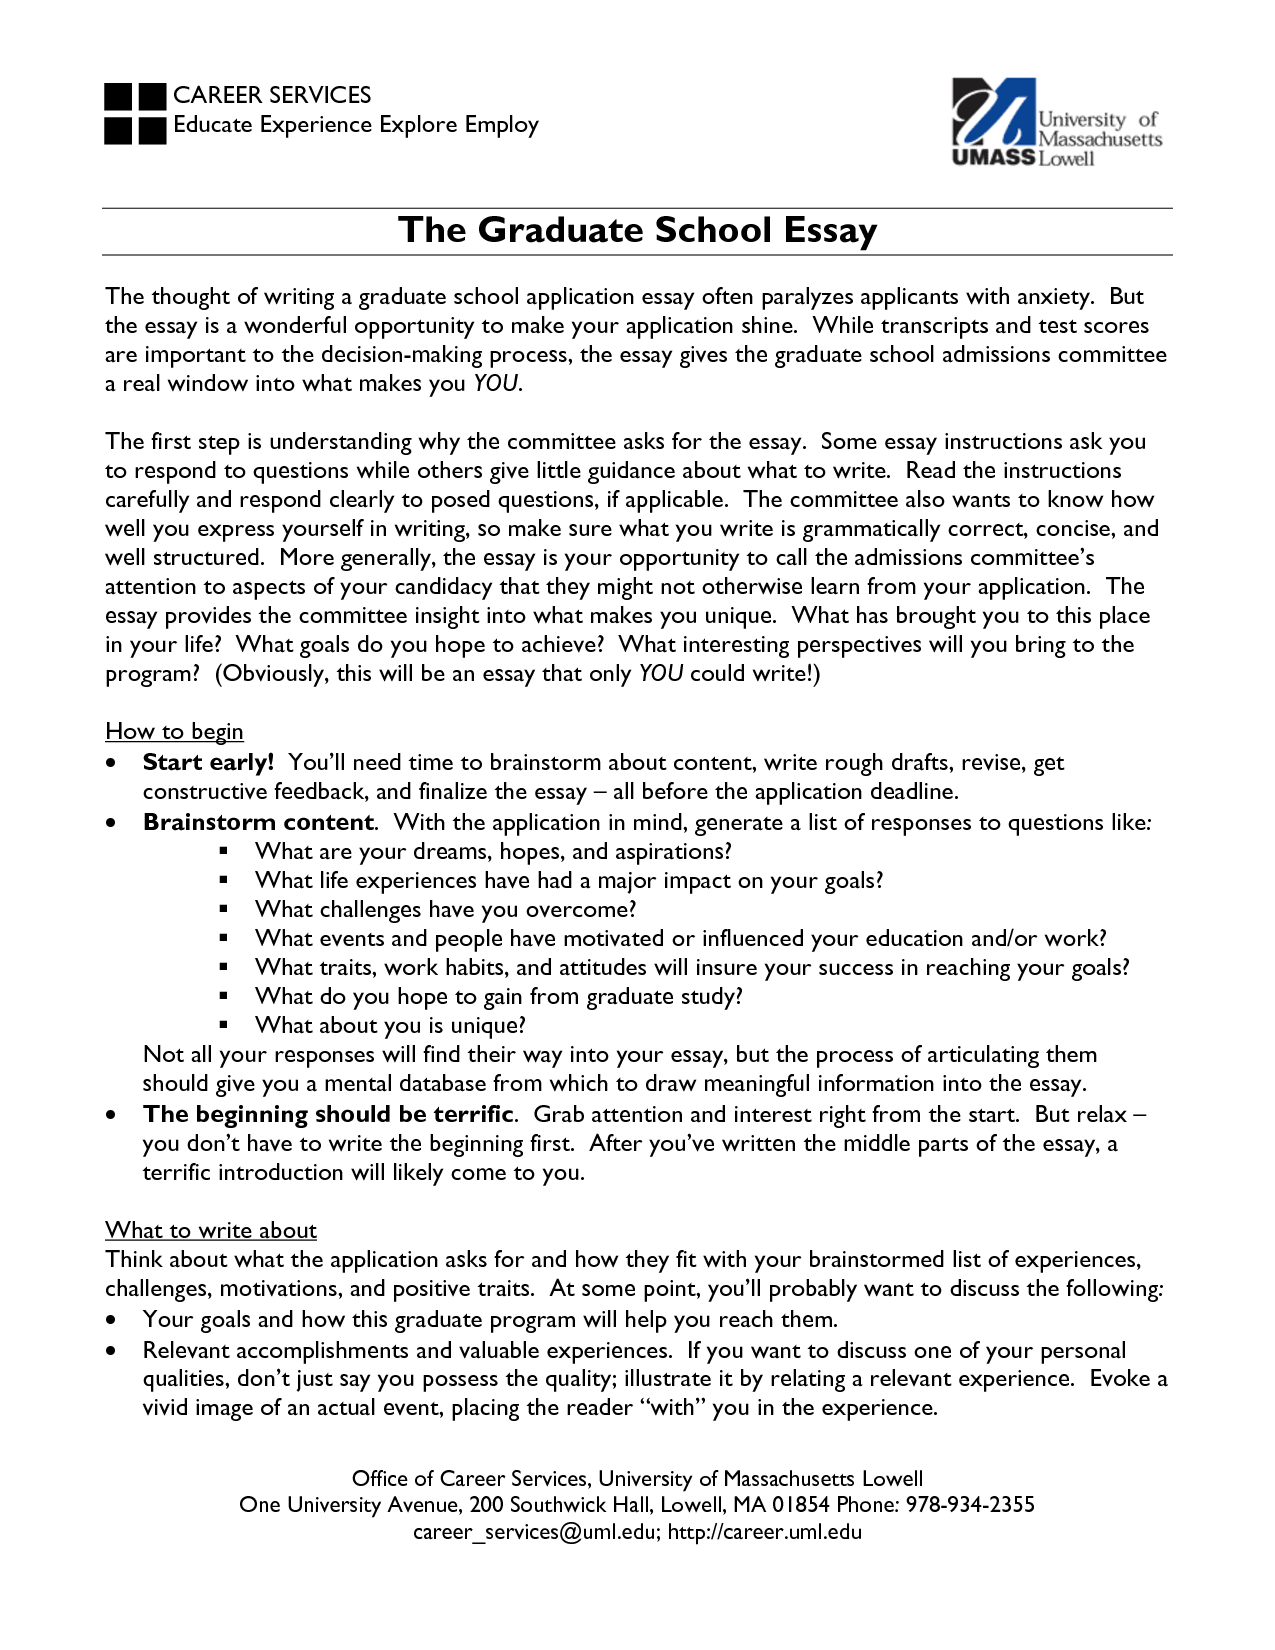 essay graduate school entrance A graduate school admissions essay introduction needs to strike a balance between grabbing attention, and remaining structurally sound and properly written.